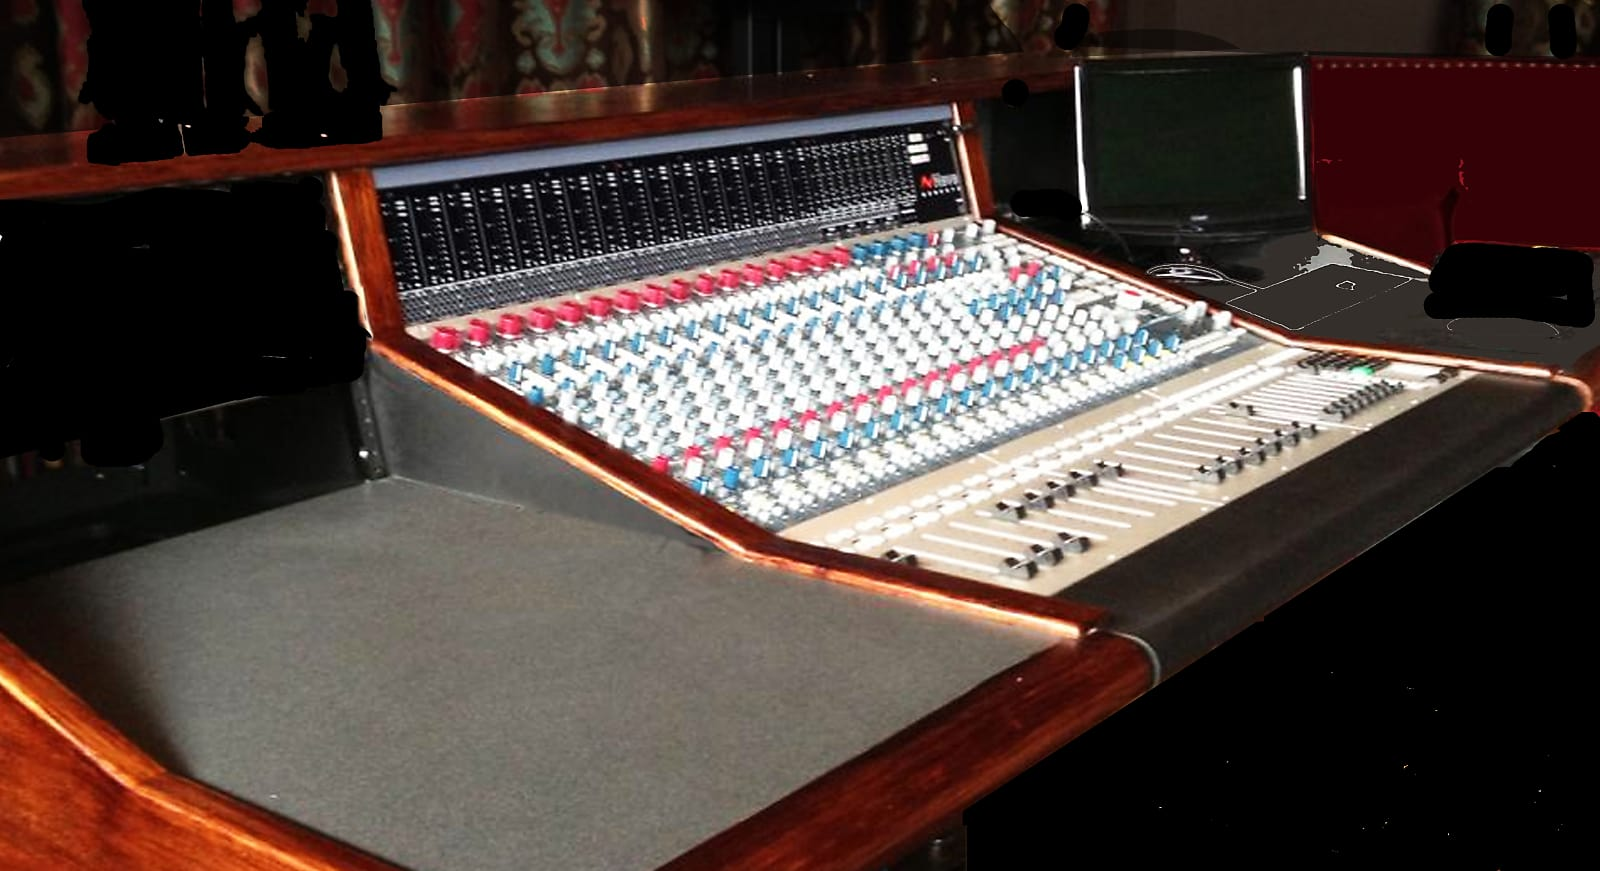 AMS Neve Genesys G32 • 32 Input x 16 Fader • 1073 Mic Pres • LOADED • NEW in Crate • FULL Warranty